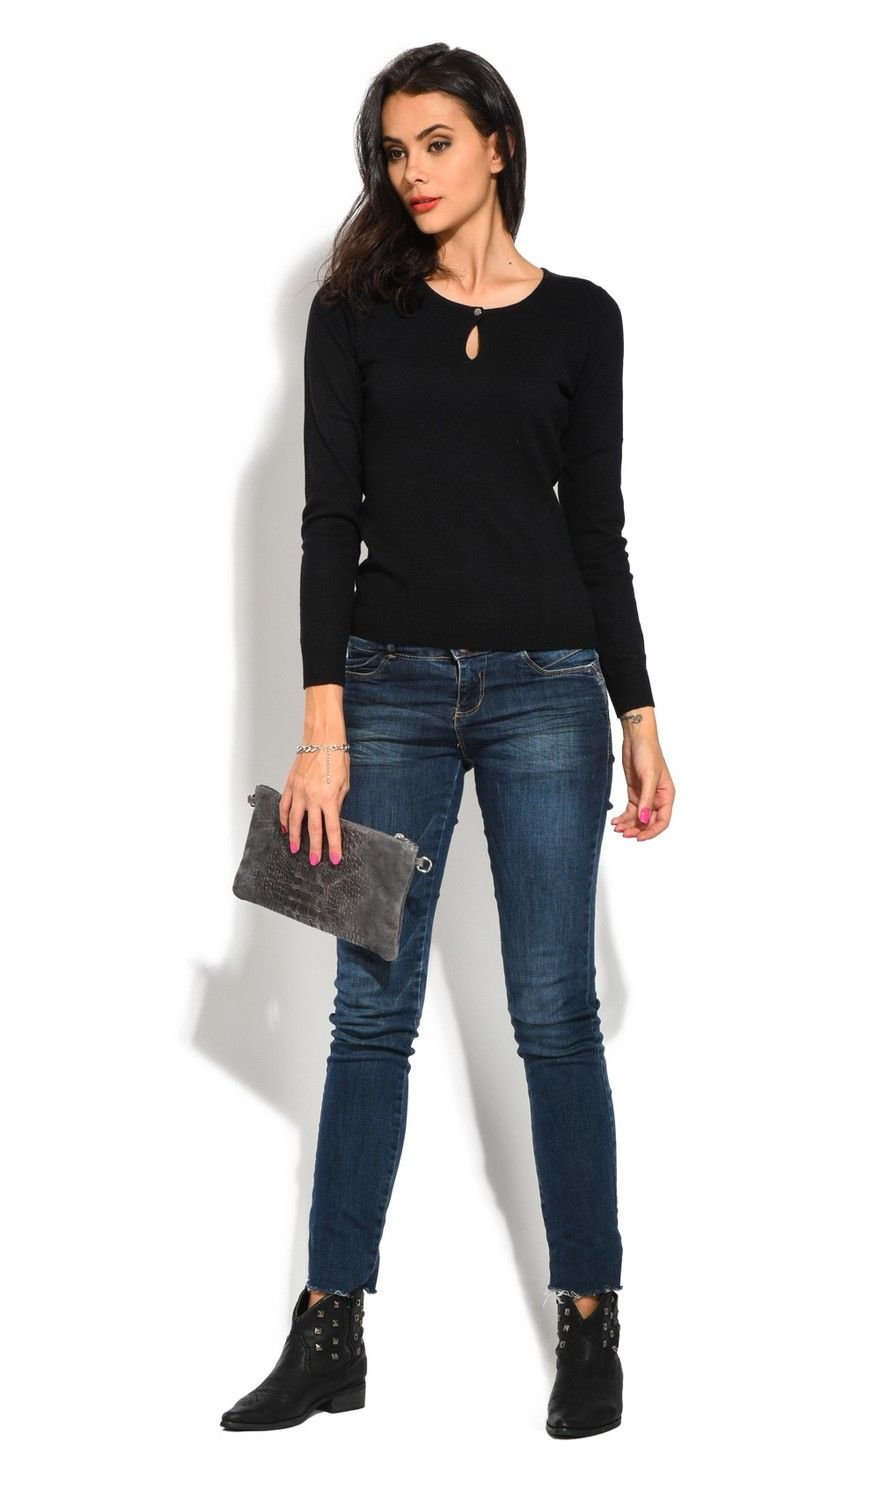 William De Faye Round Neck Keyhole with Button Sweater in Black